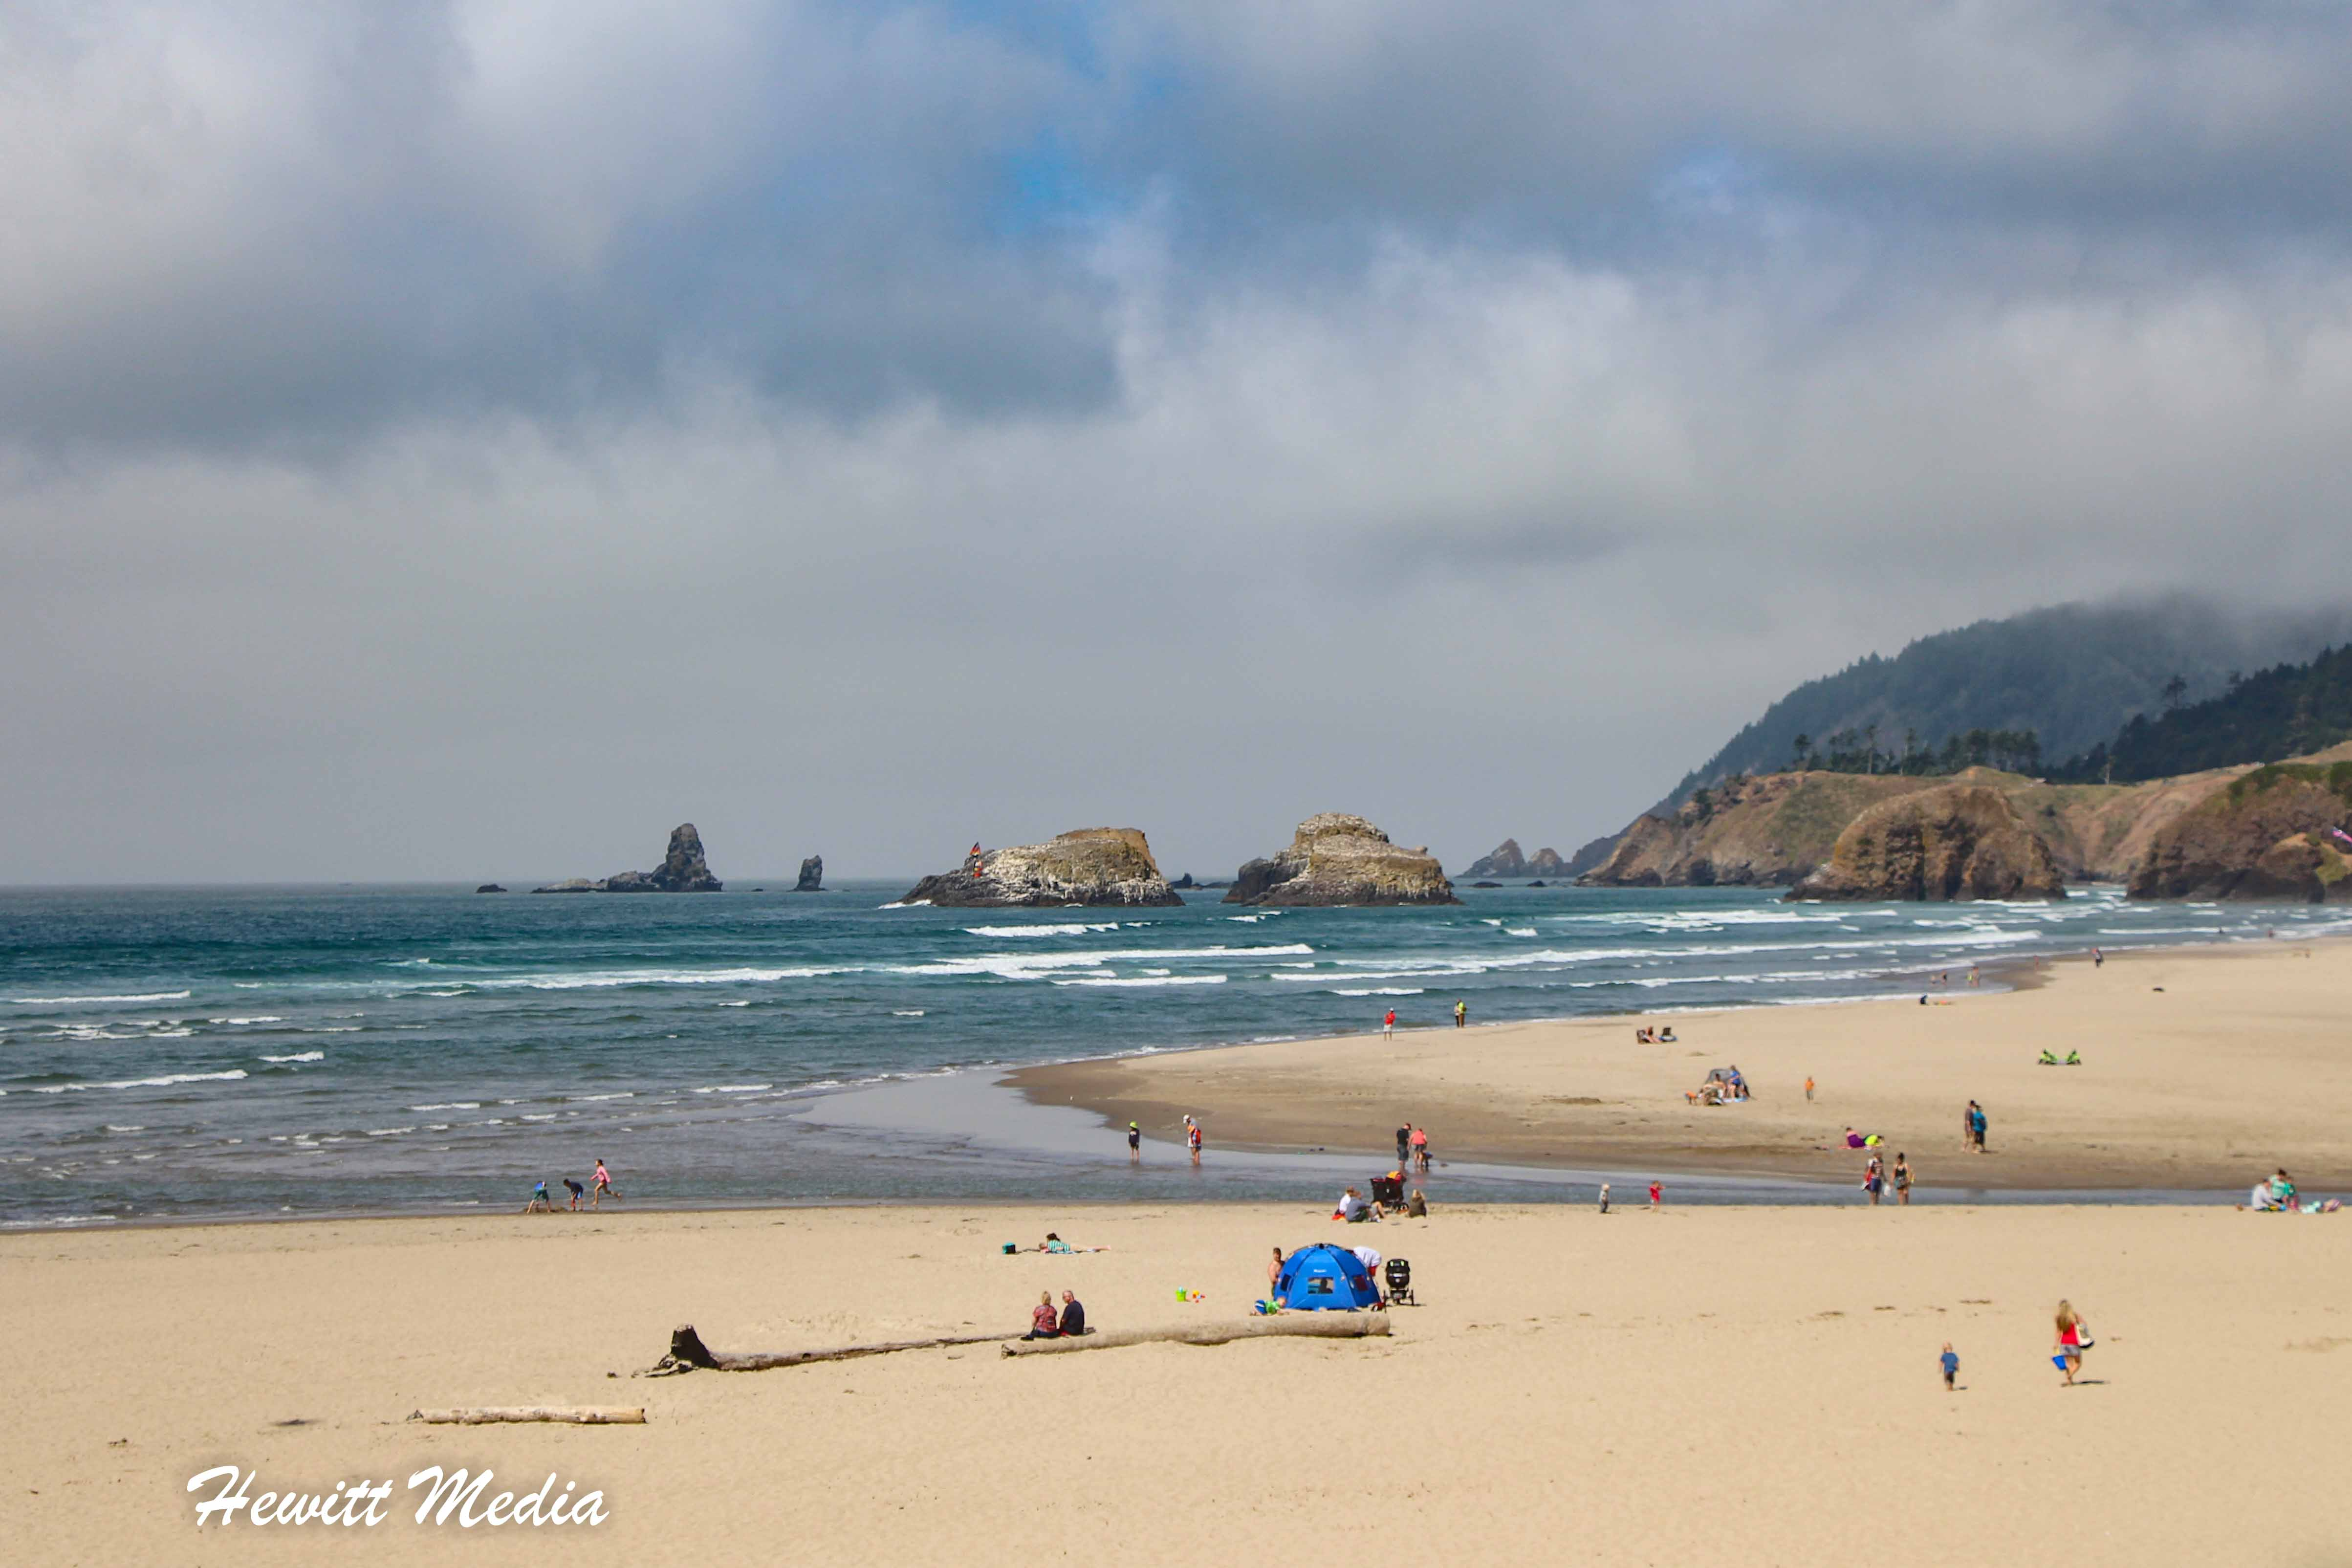 The beach near Canon Beach